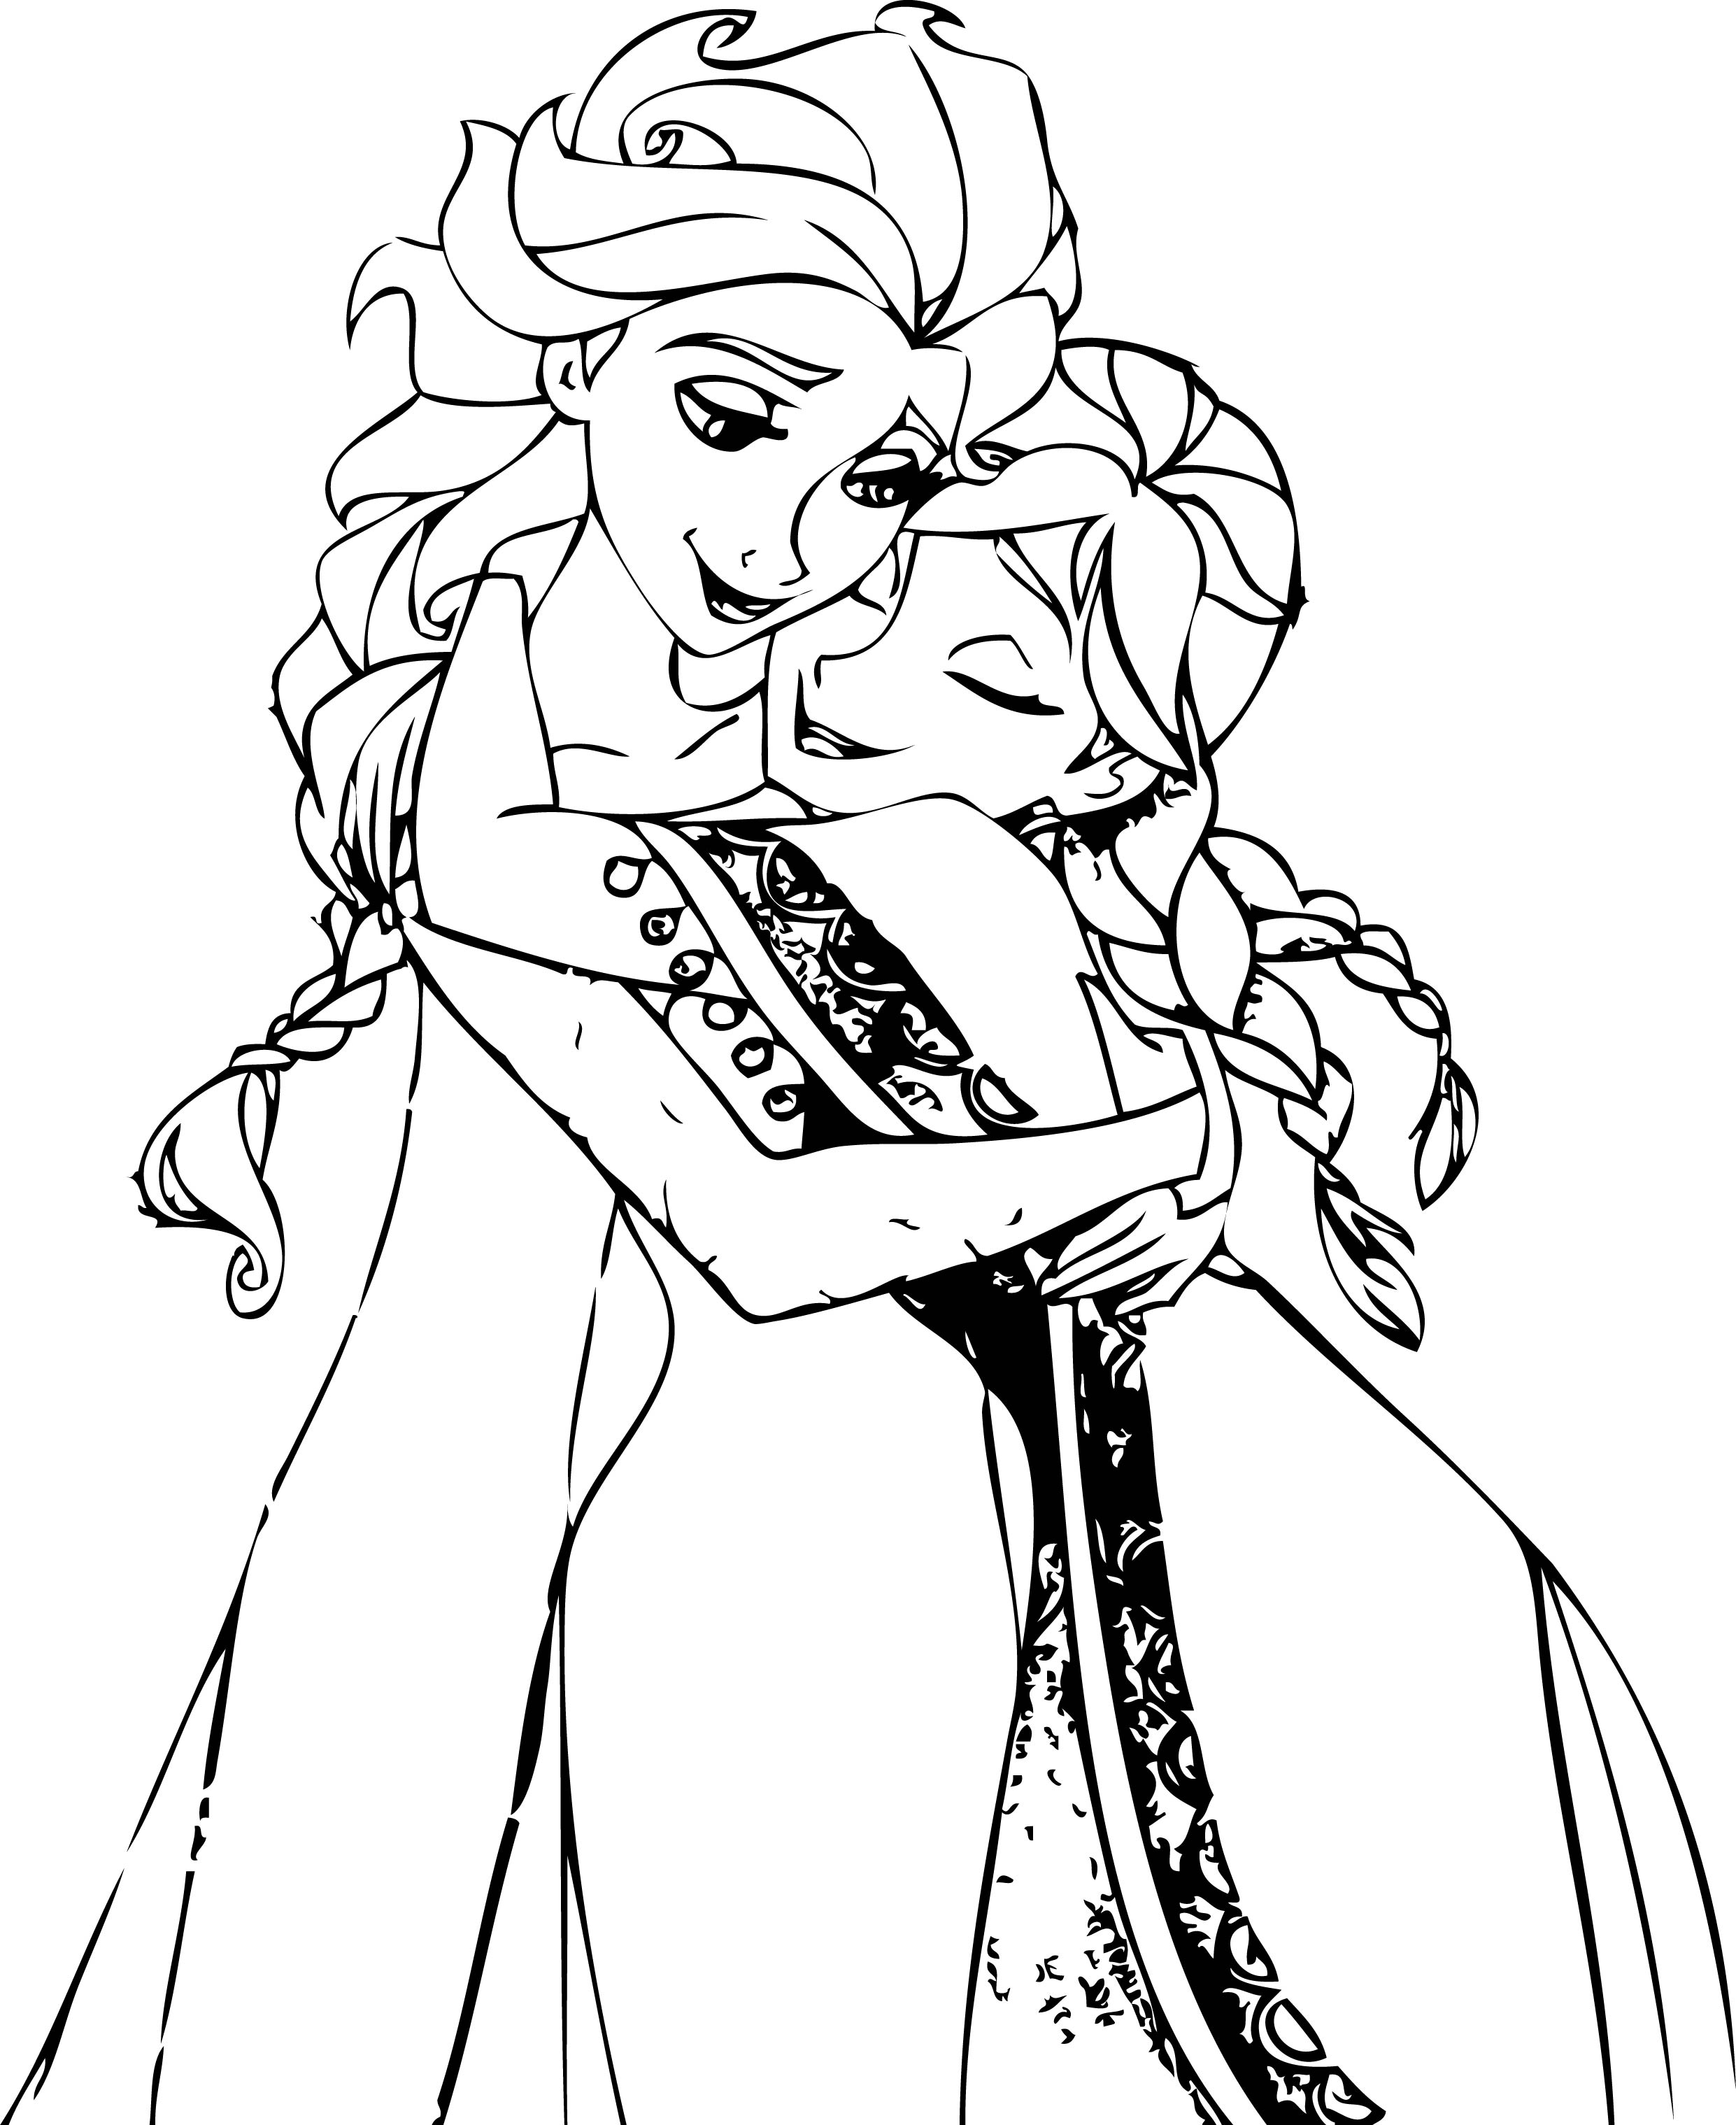 Elsa And Anna Hug Coloring Page Wecoloringpage